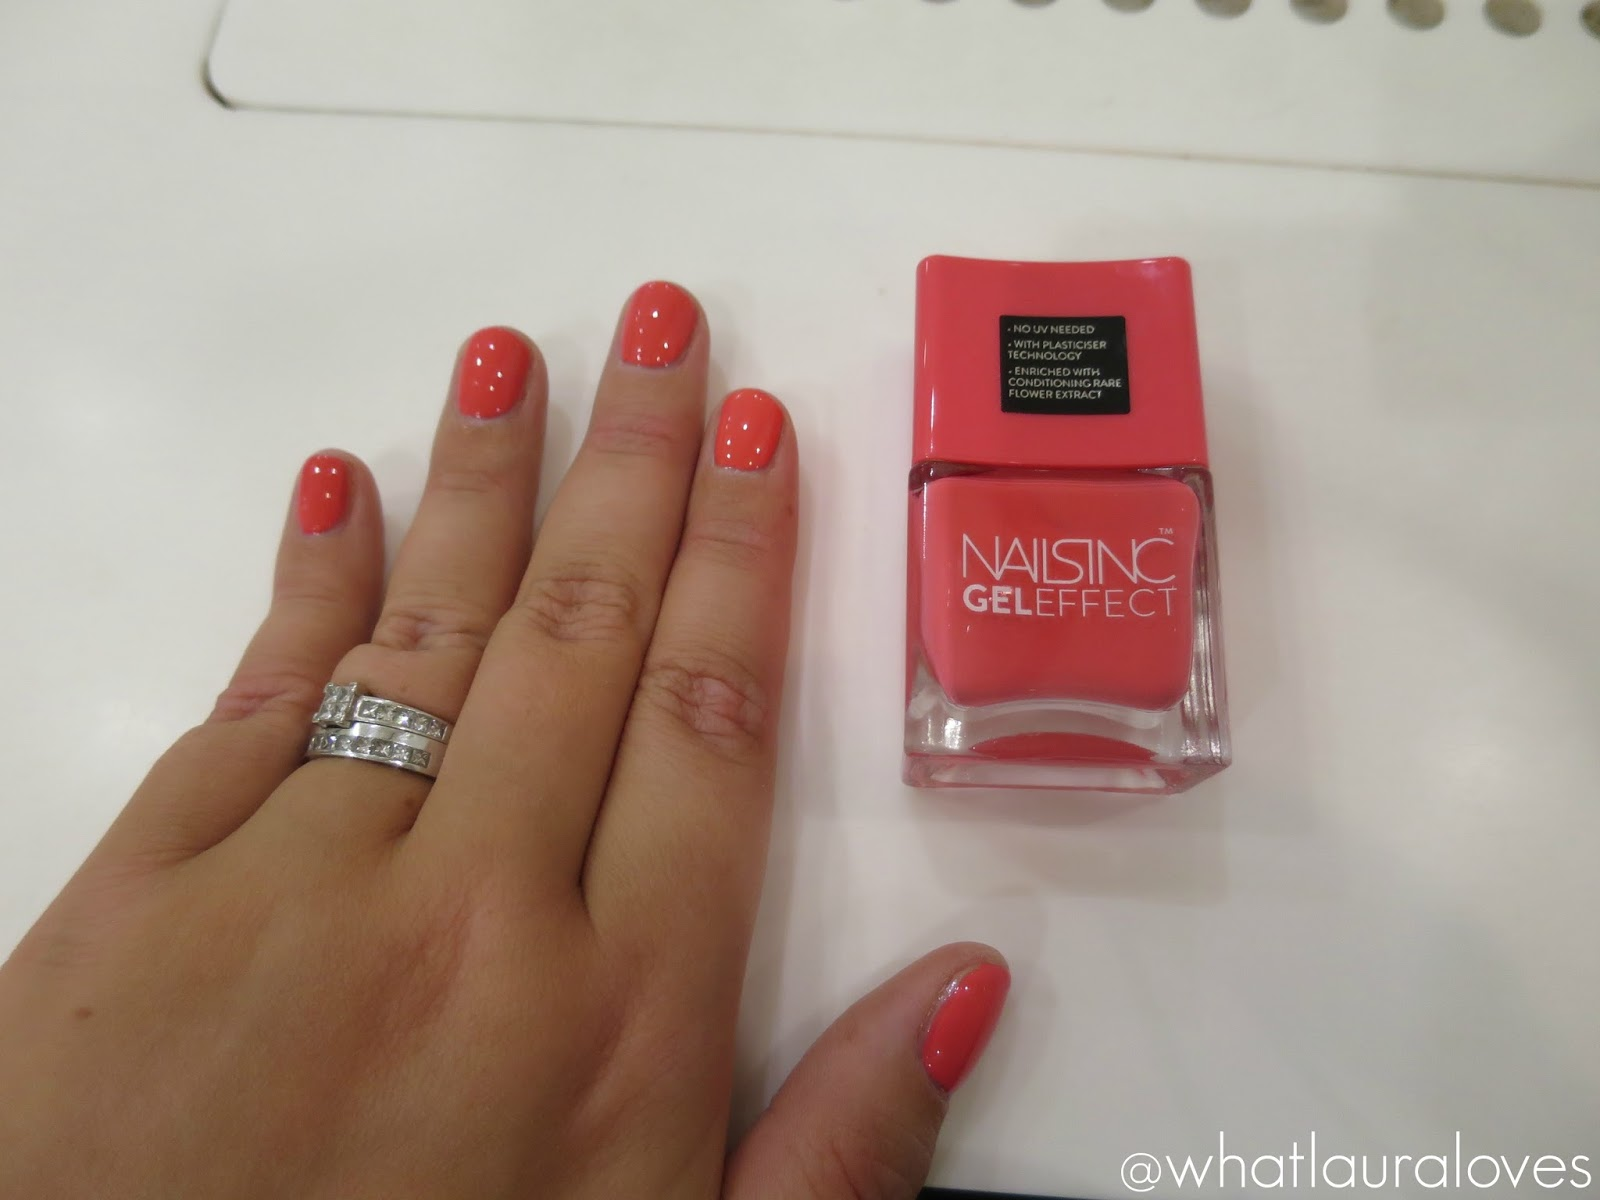 Nails Inc Express Manicure at Selfridges Trafford Centre | What ...